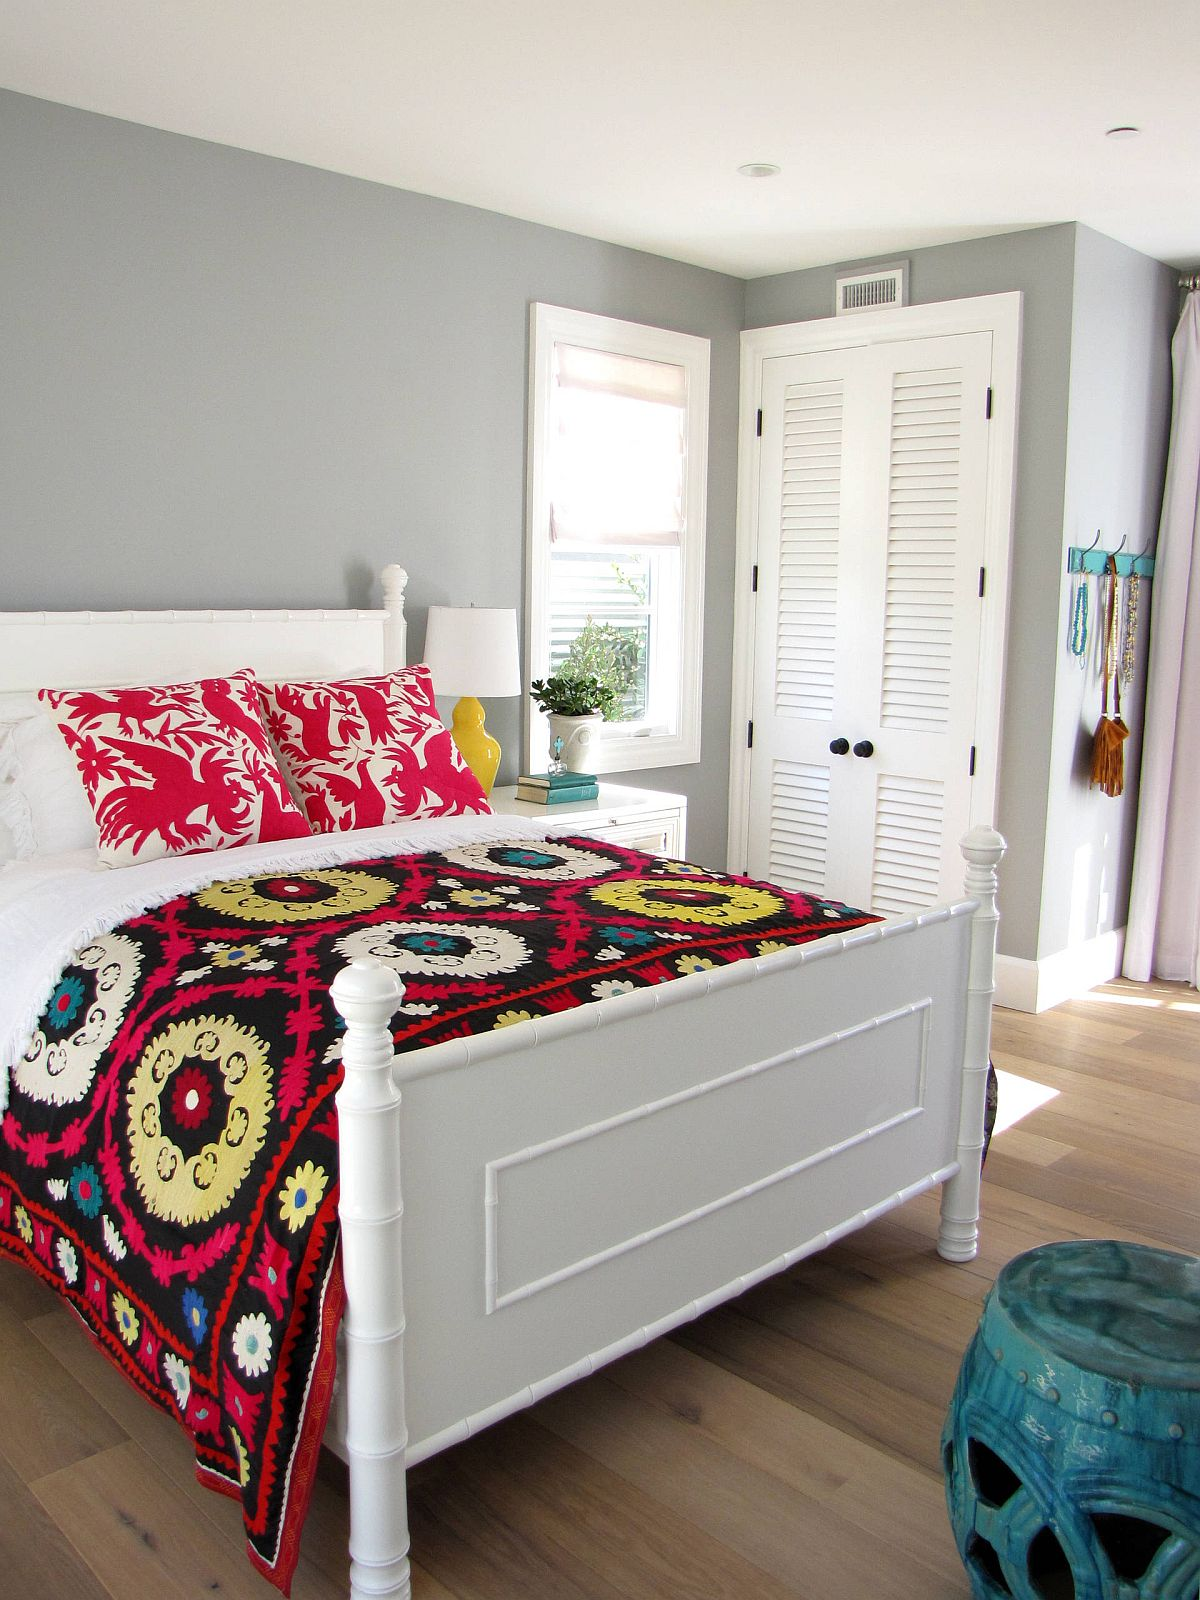 Use textiles to add bright color to the bedroom with ease